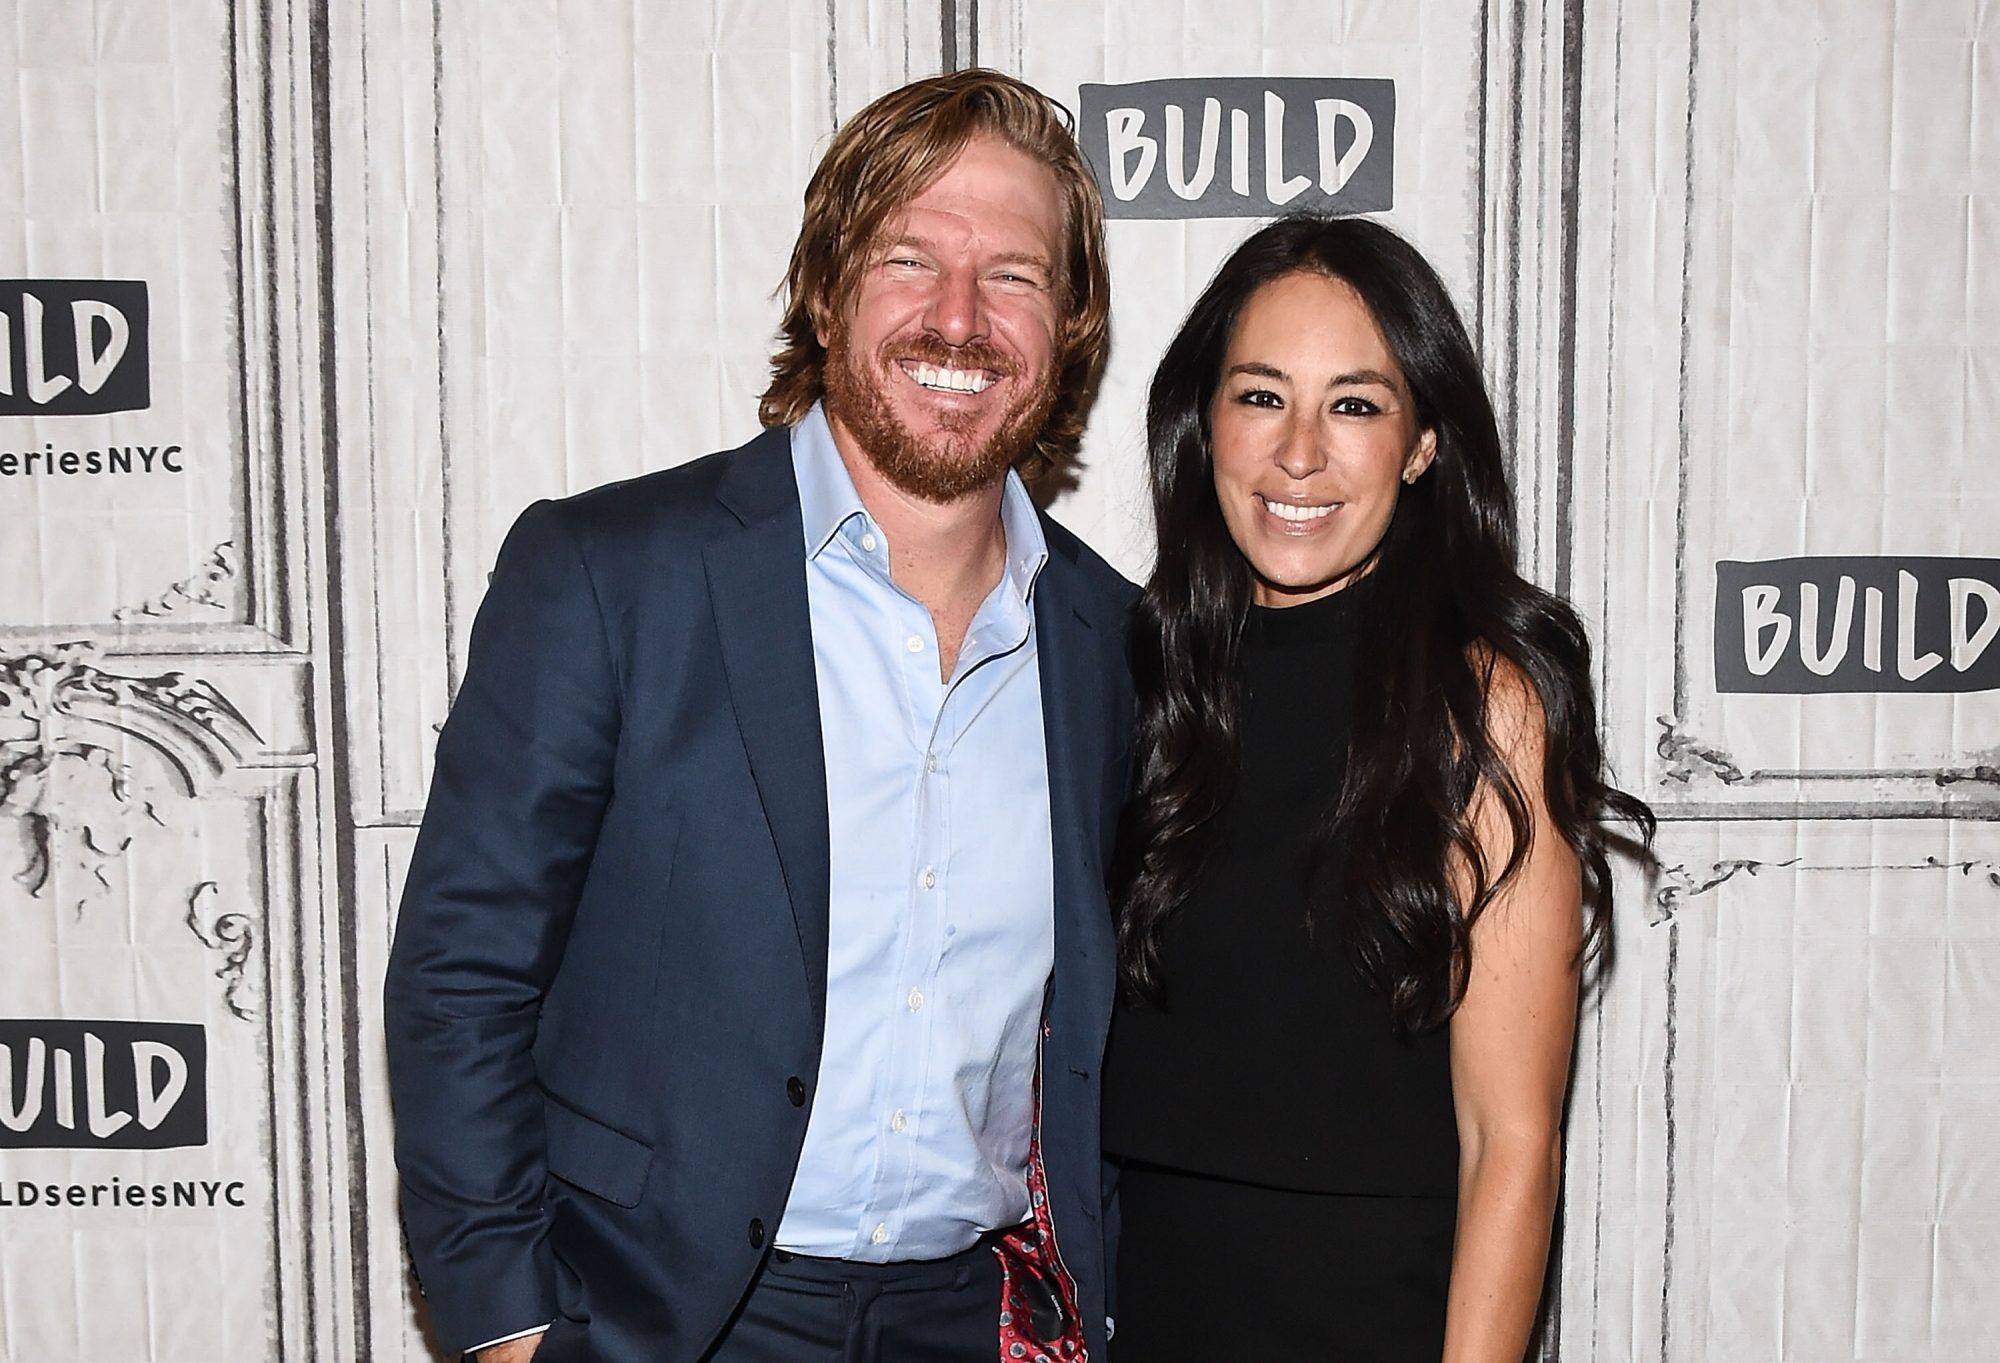 Joanna Gaines Maternity Style